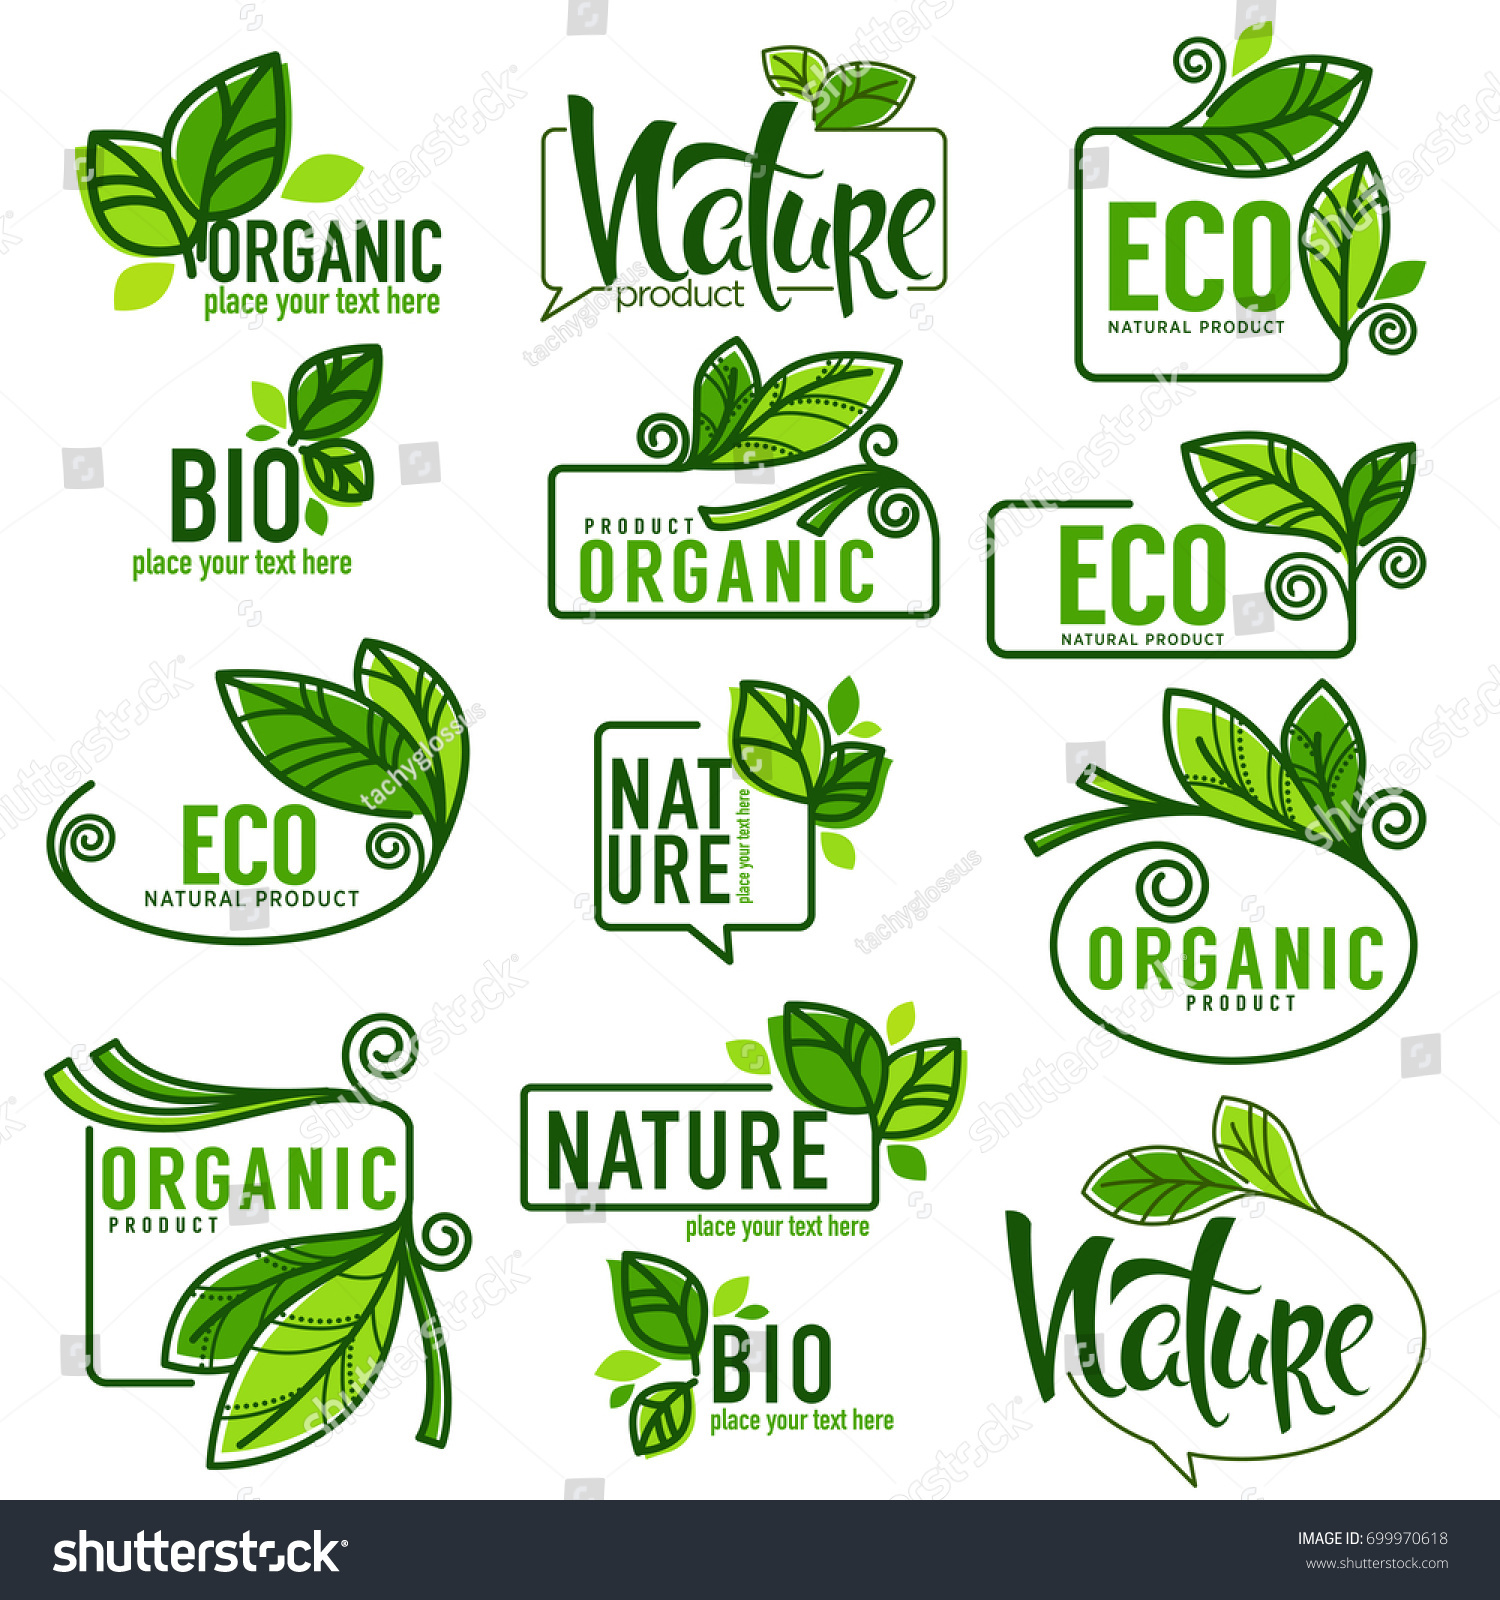 Large Vector Collection Doodle Eco Bio Stock Vector 699970618 ...